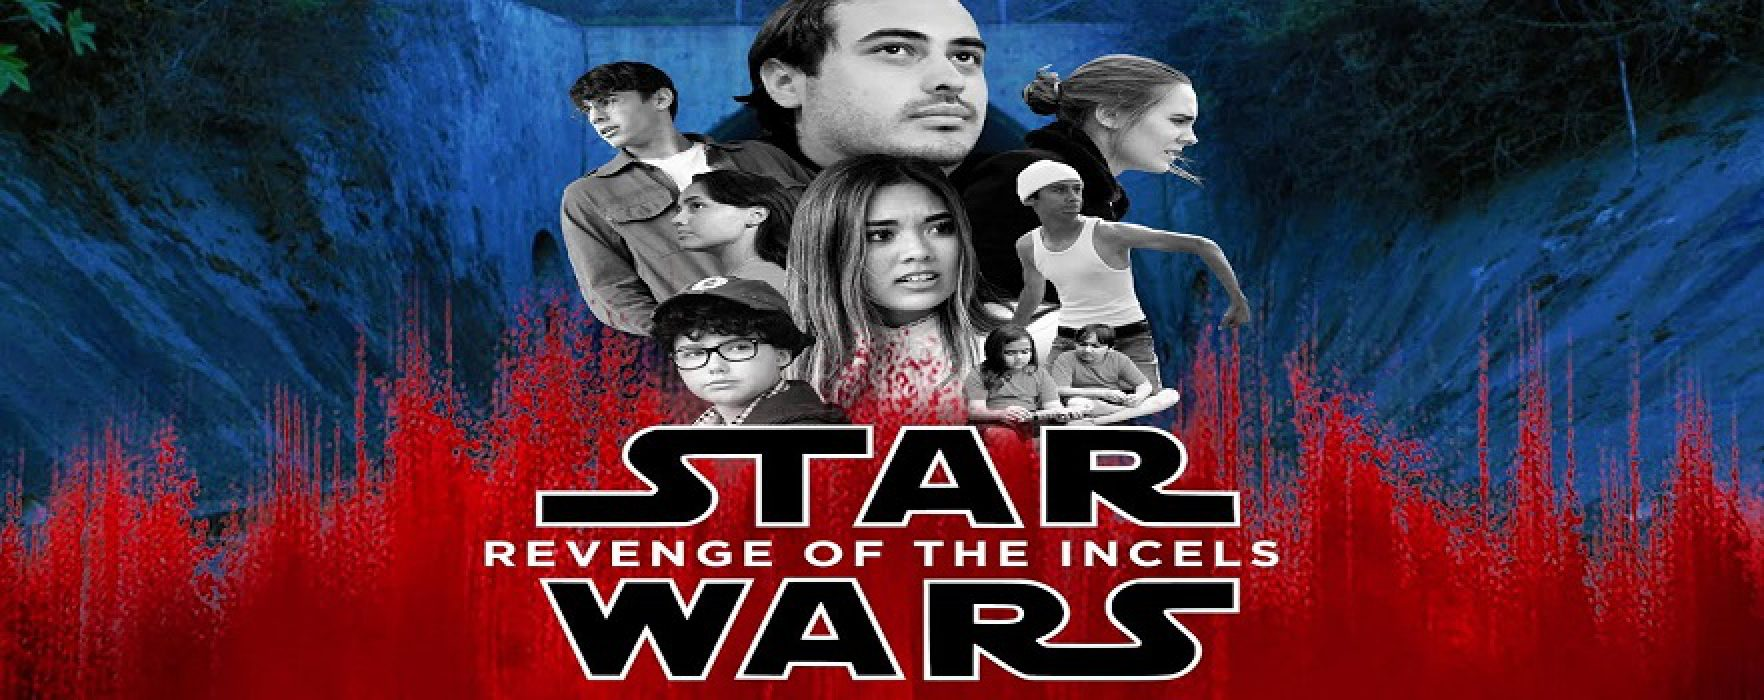 Star Wars: Revenge of the Incels Takes on Ugly Side of the Force